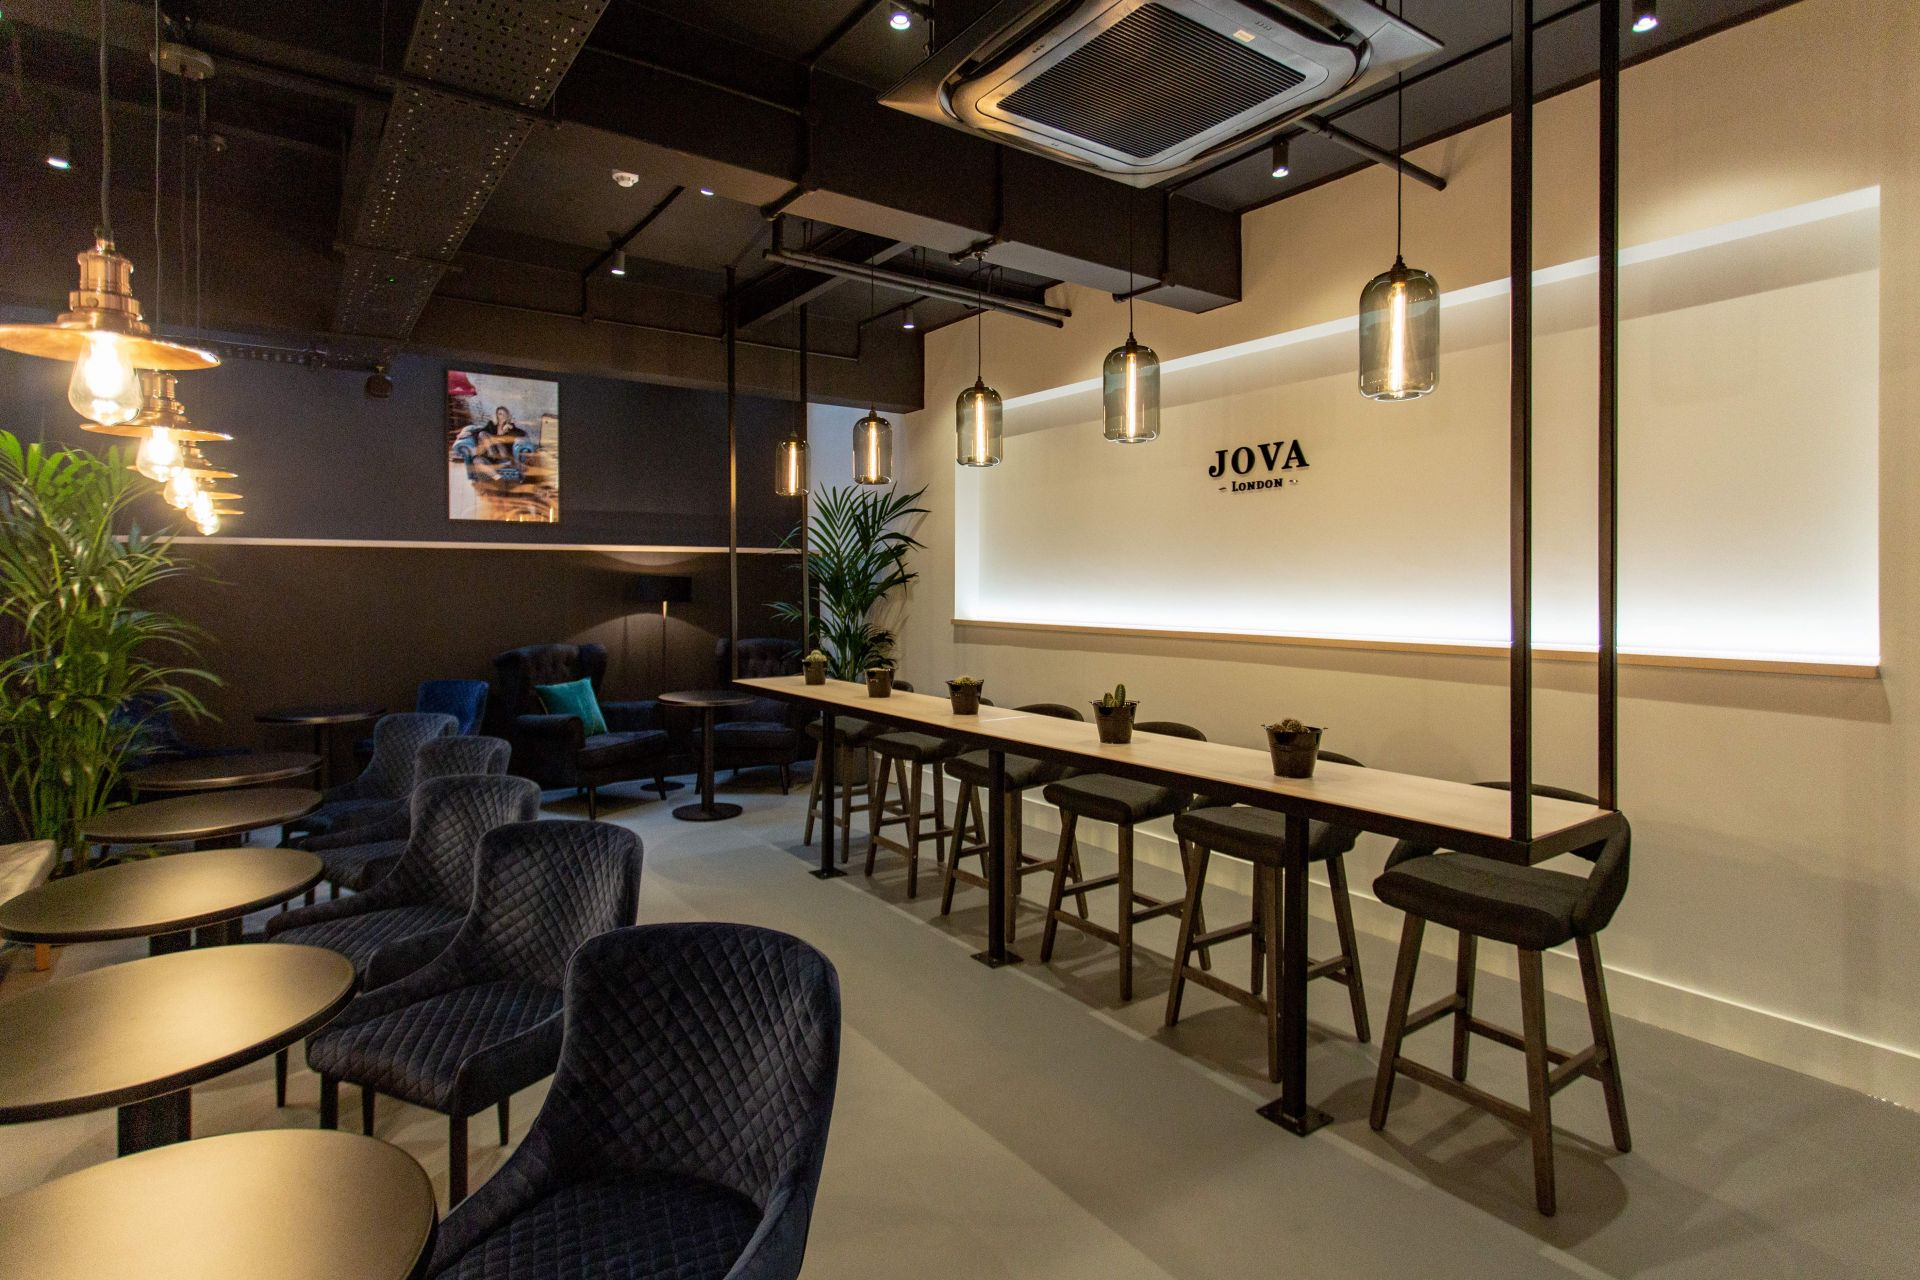 JOVA London - Marylebone, London